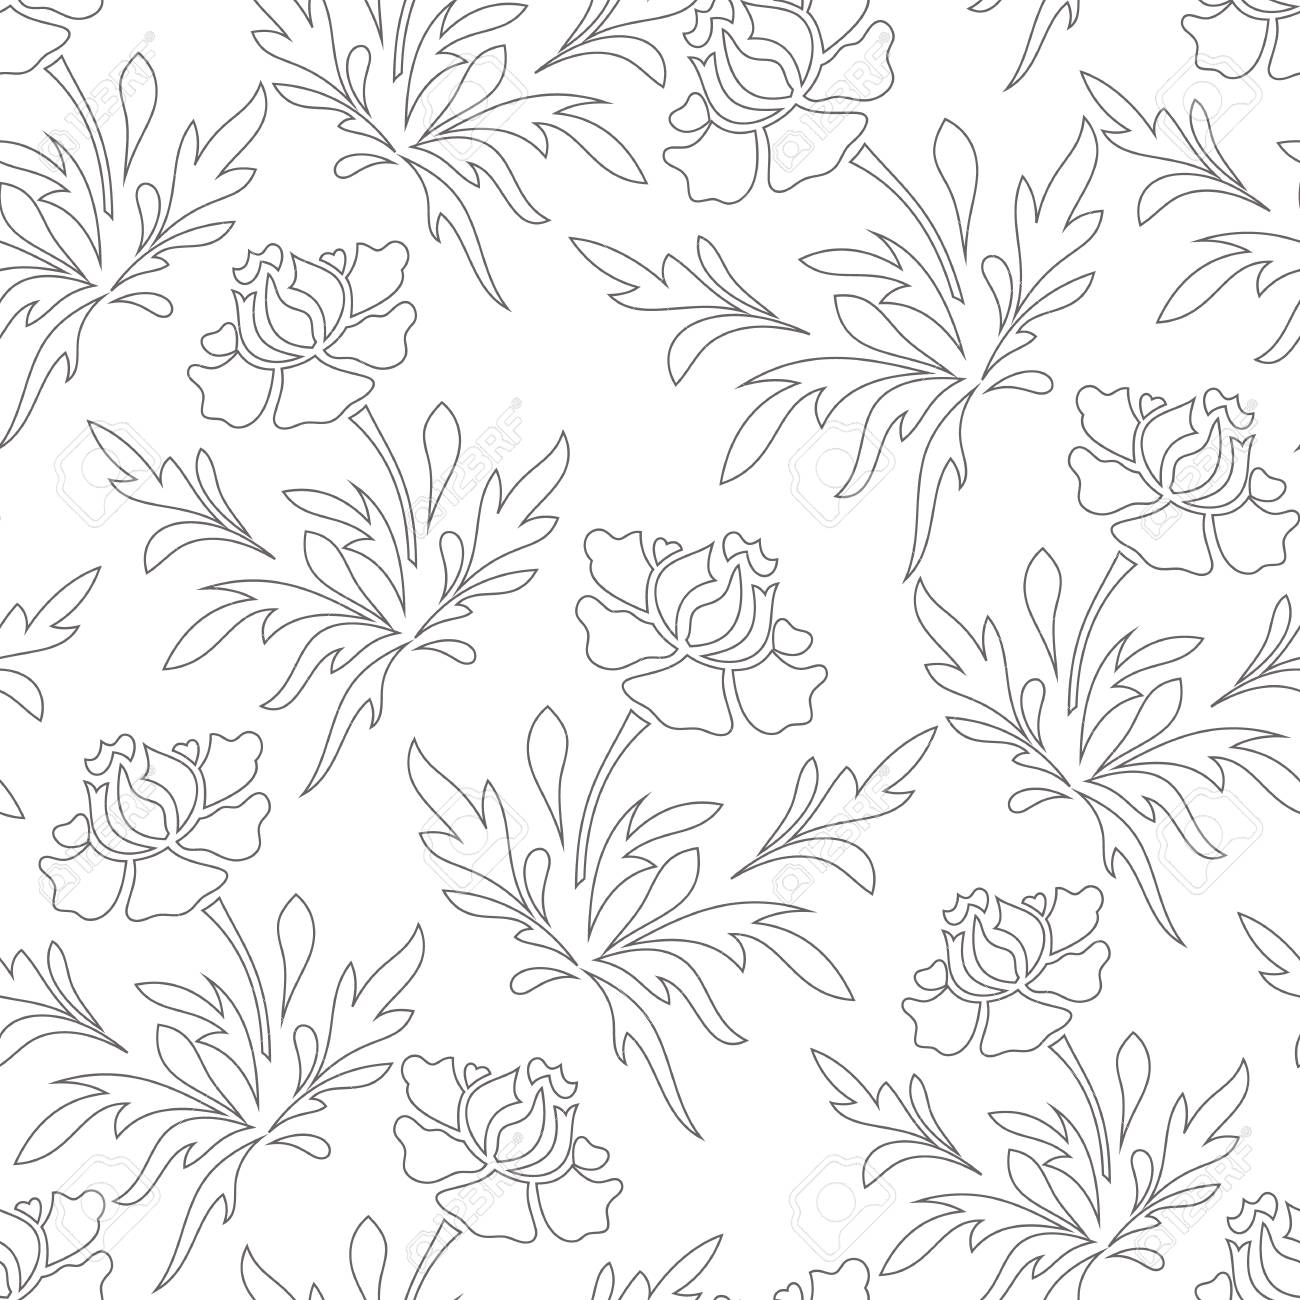 Stroke Stancil Vector seamless pattern background like pencil art. Perfect use for wall-paper, fabric, textile, wrapping paper and many other type of surface. - 124697593